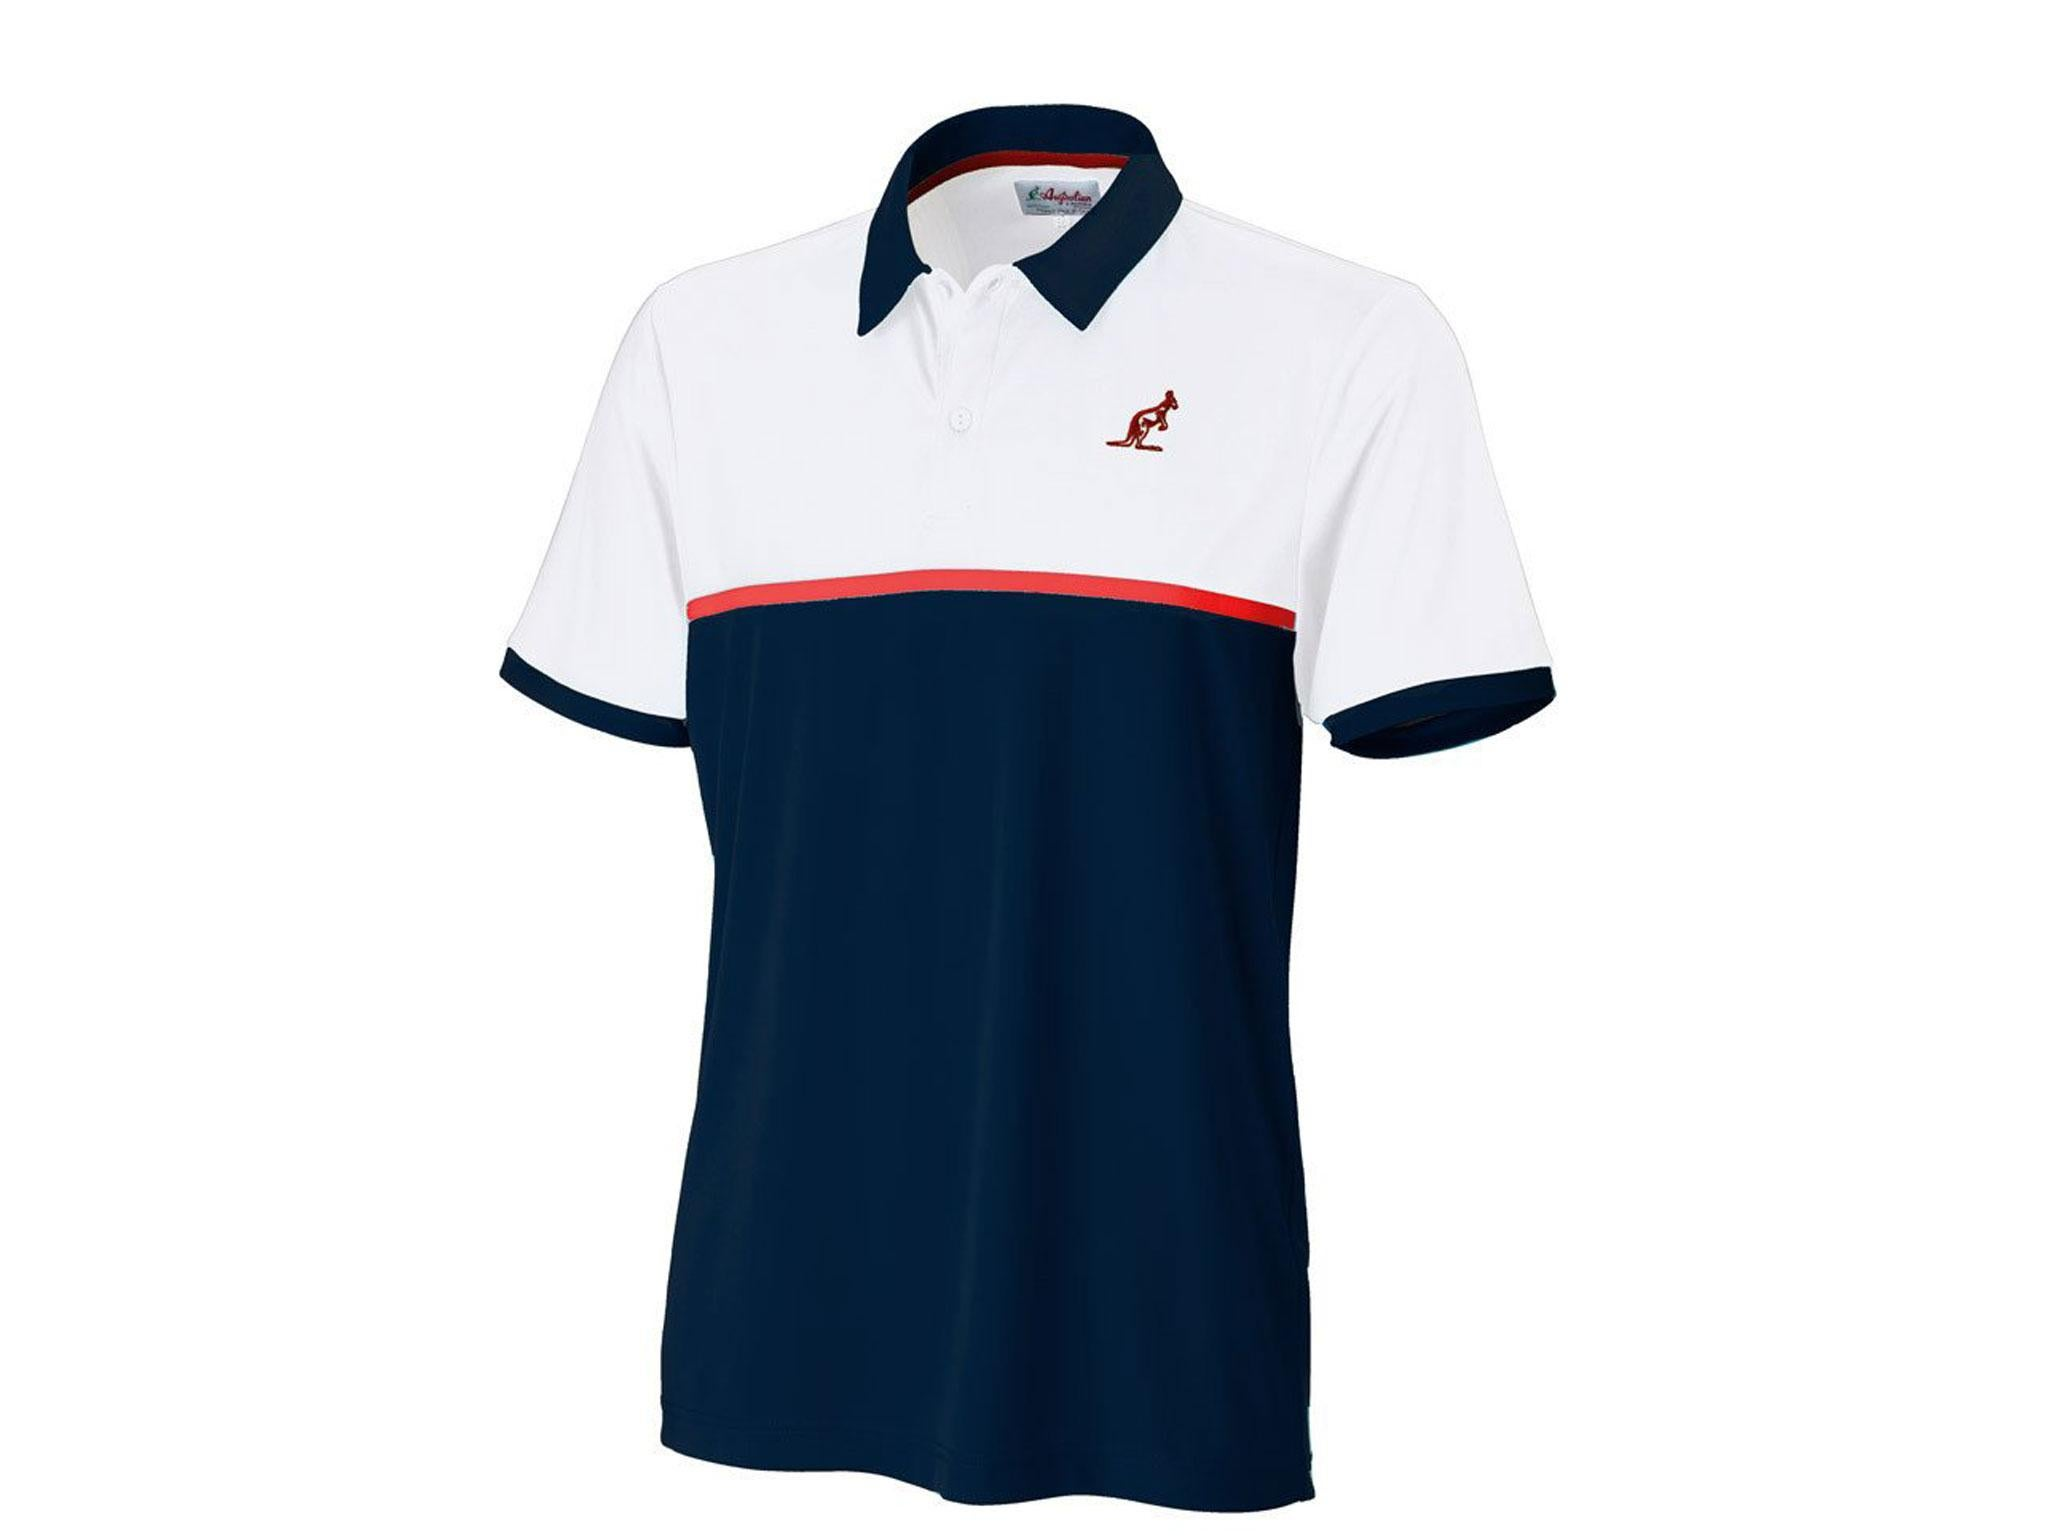 daafe0e4bbab3c 15 best tennis clothing | The Independent